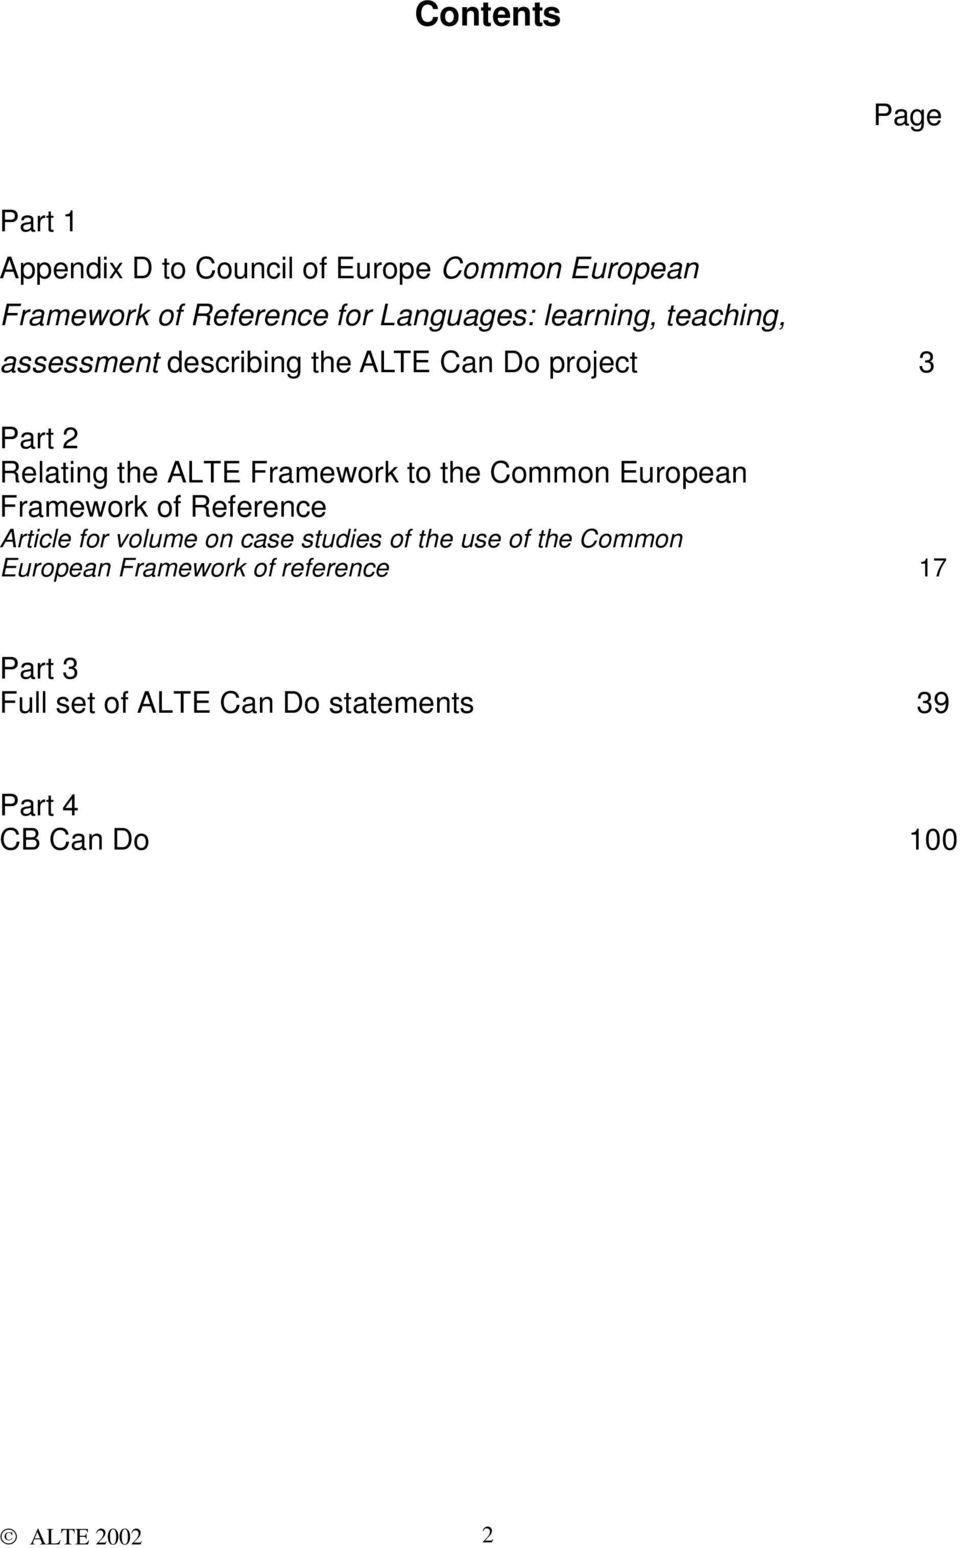 the Common European Framework of Reference Article for volume on case studies of the use of the Common